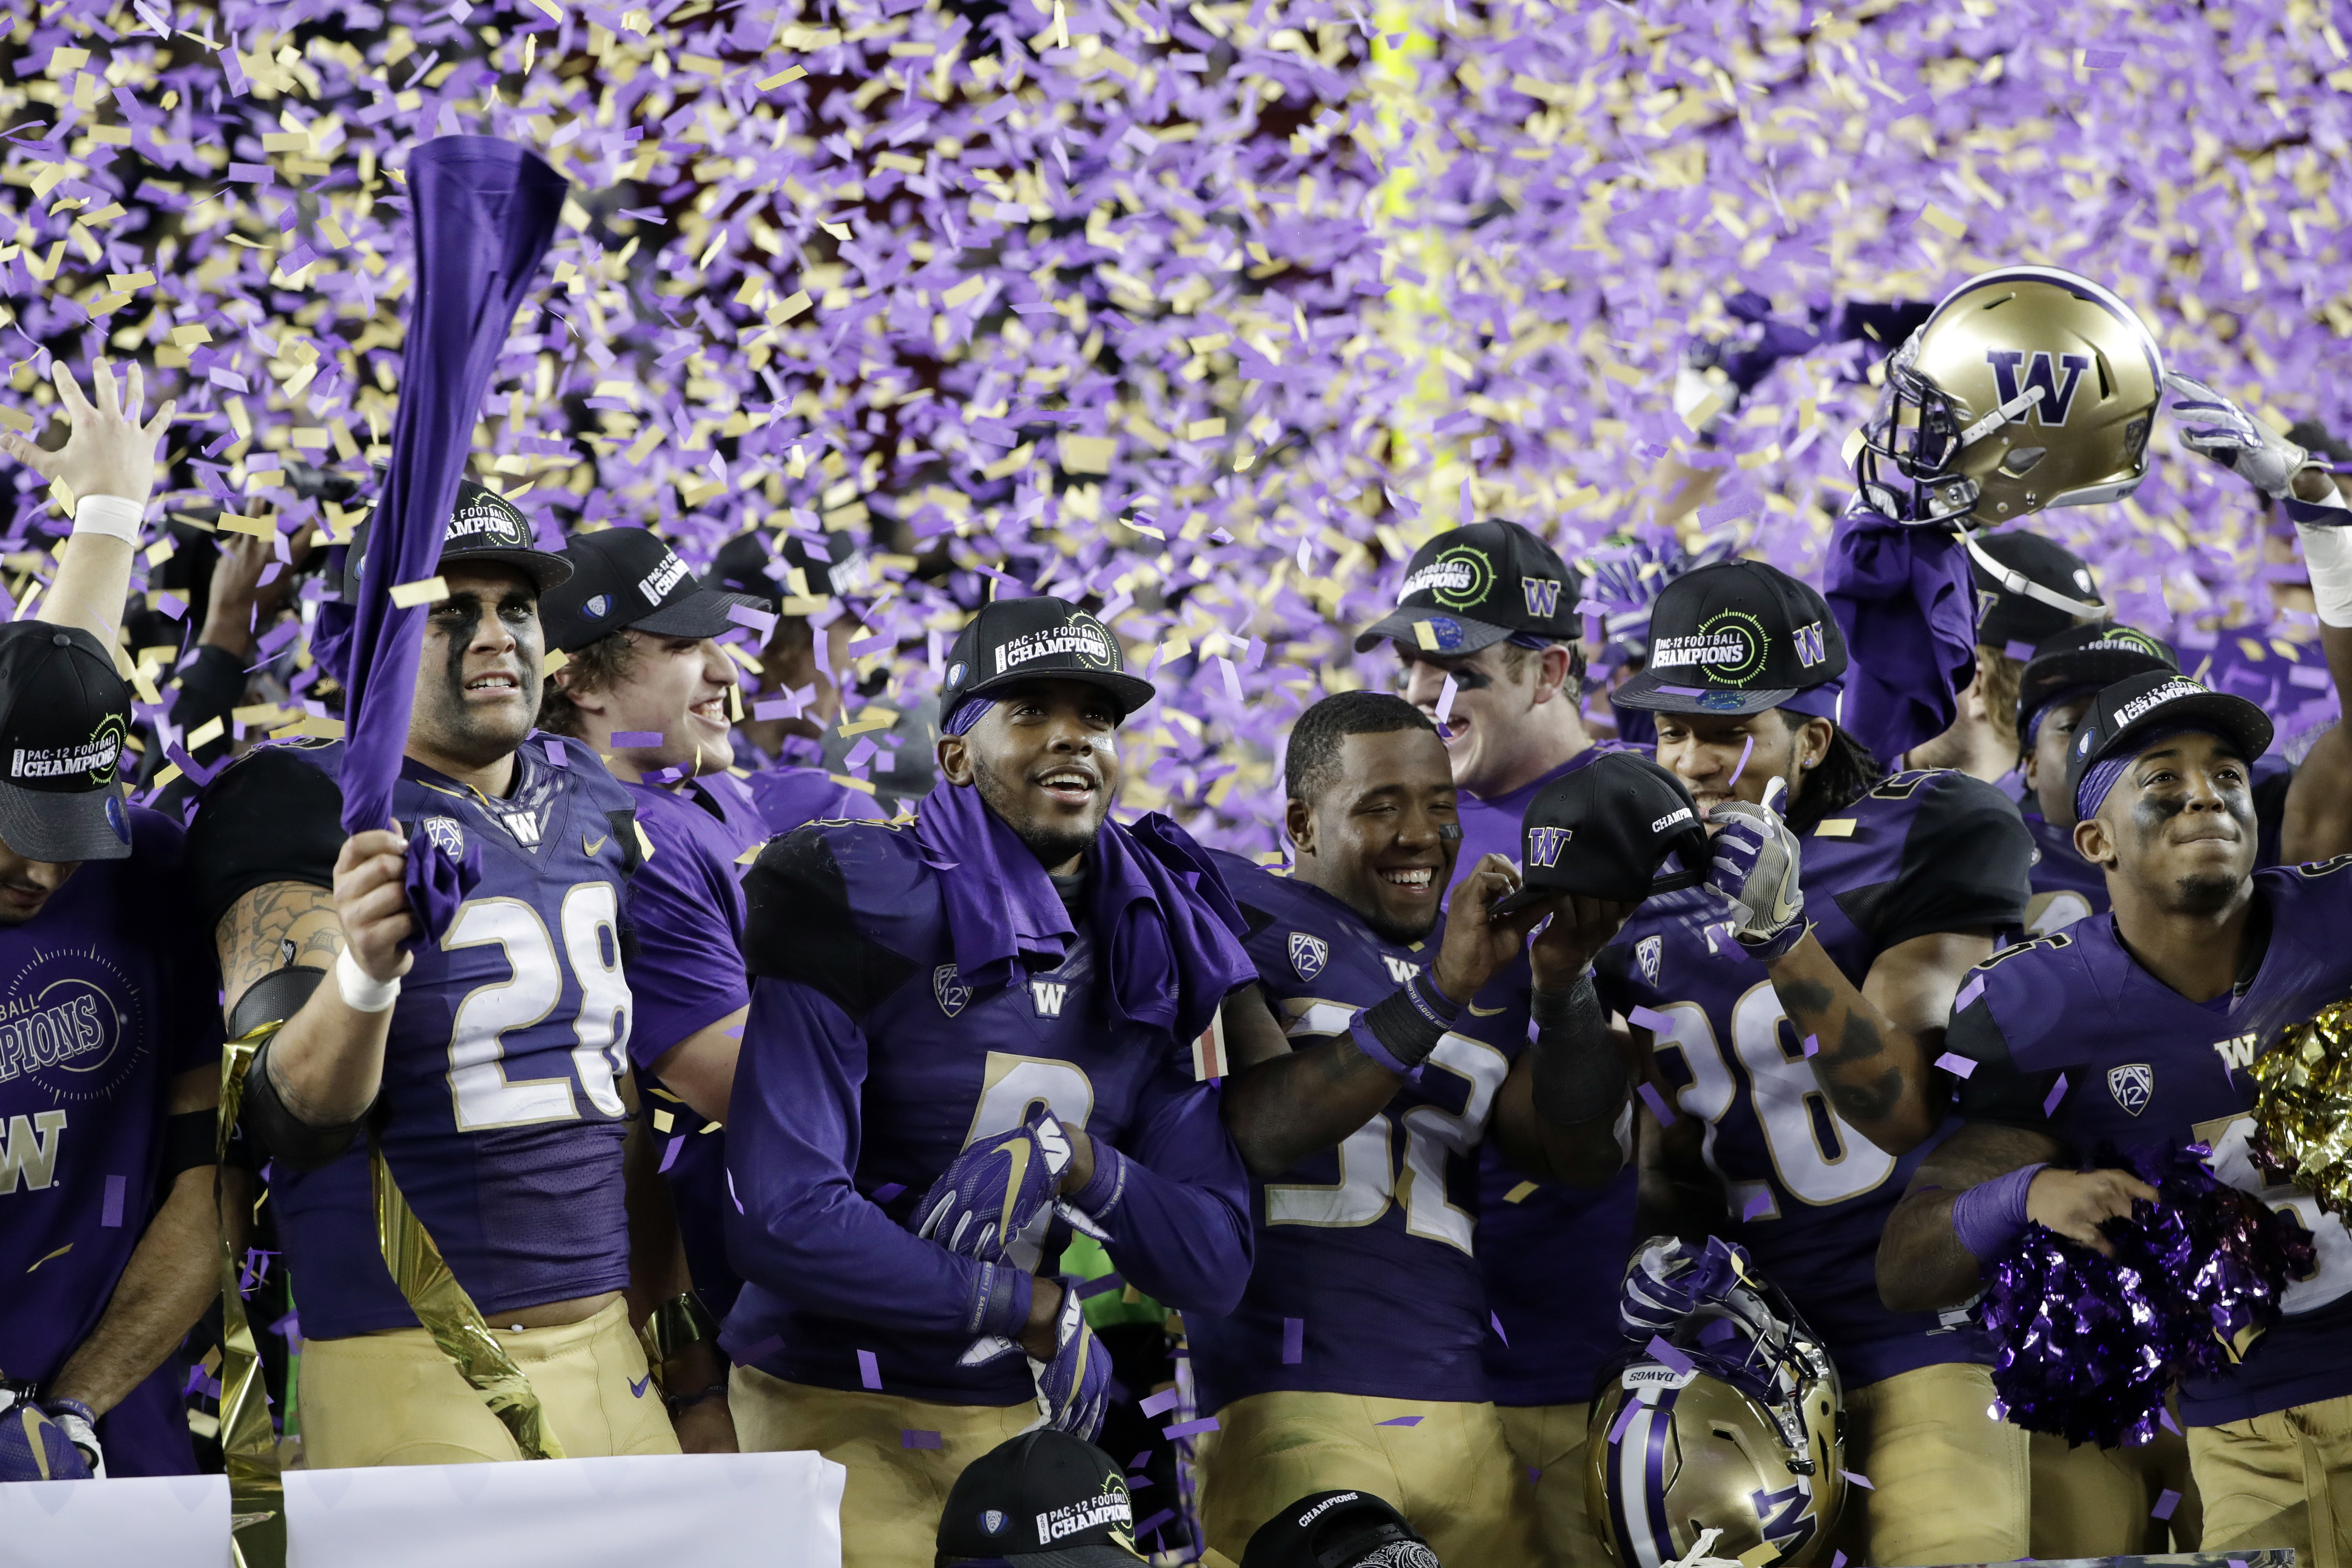 Washington players celebrate the team's 41-10 win over Colorado in the Pac-12 Conference championship NCAA college football game Friday, Dec. 2, 2016, in Santa Clara, Calif. (AP Photo/Marcio Jose Sanchez)